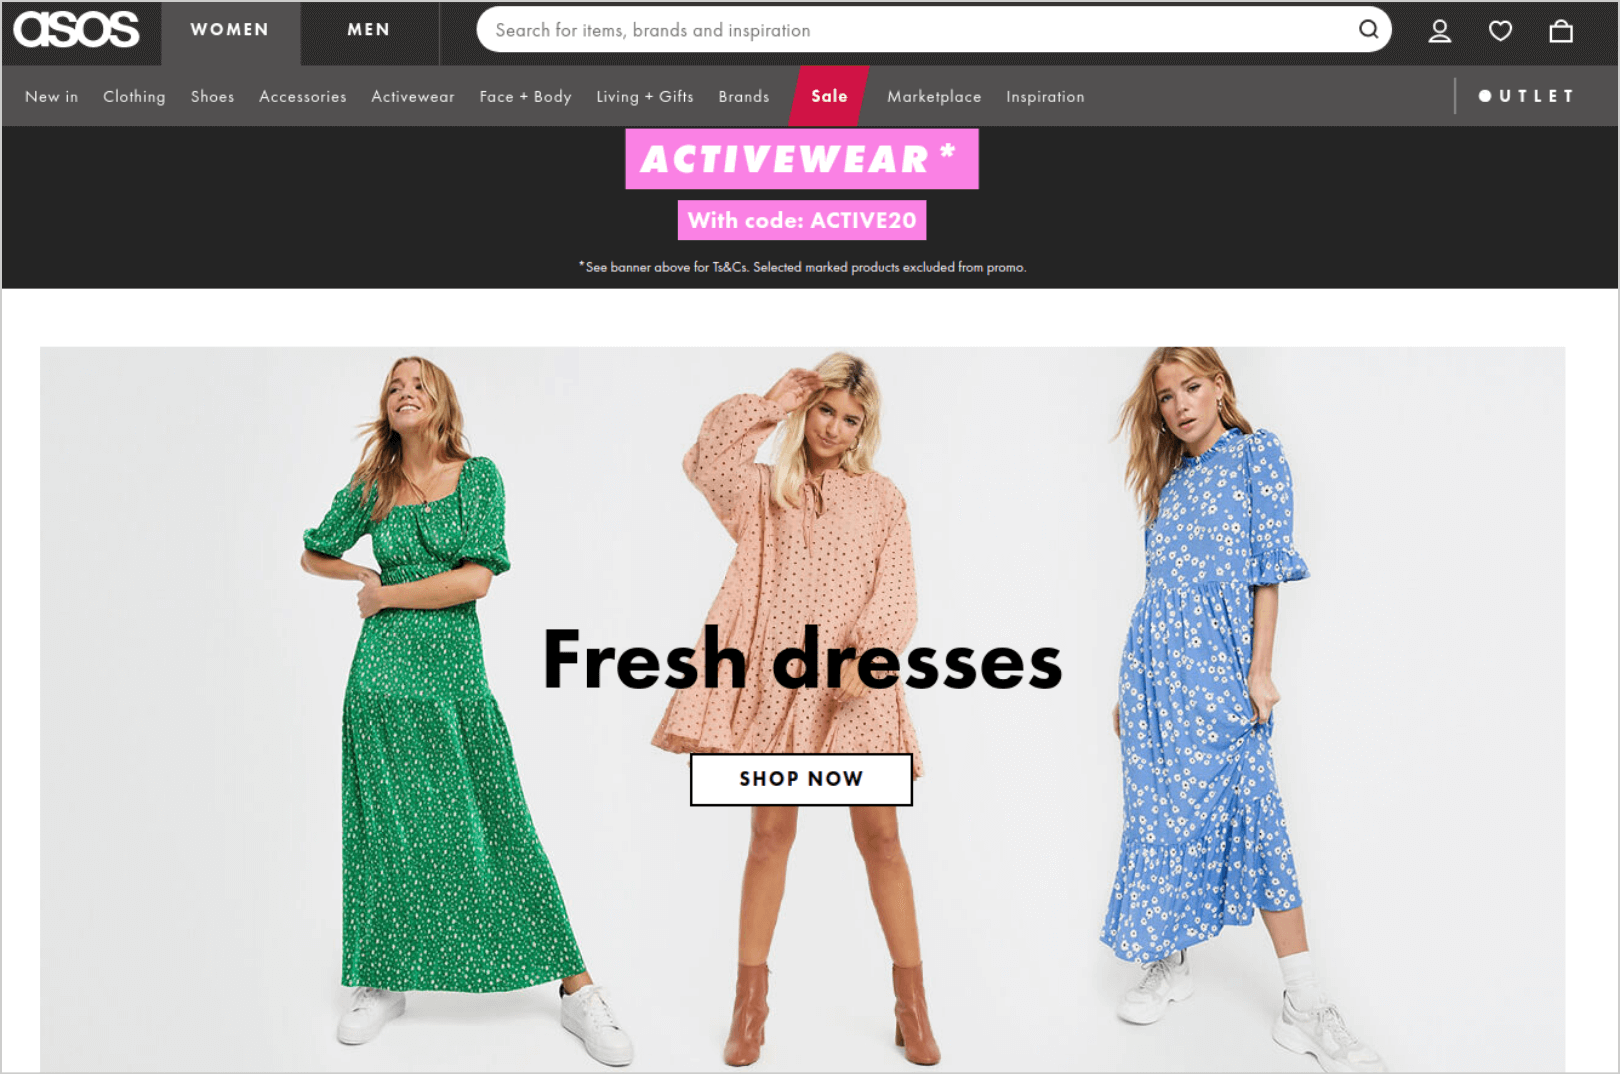 ASOS Personalize Pages by Category or Previous Searches